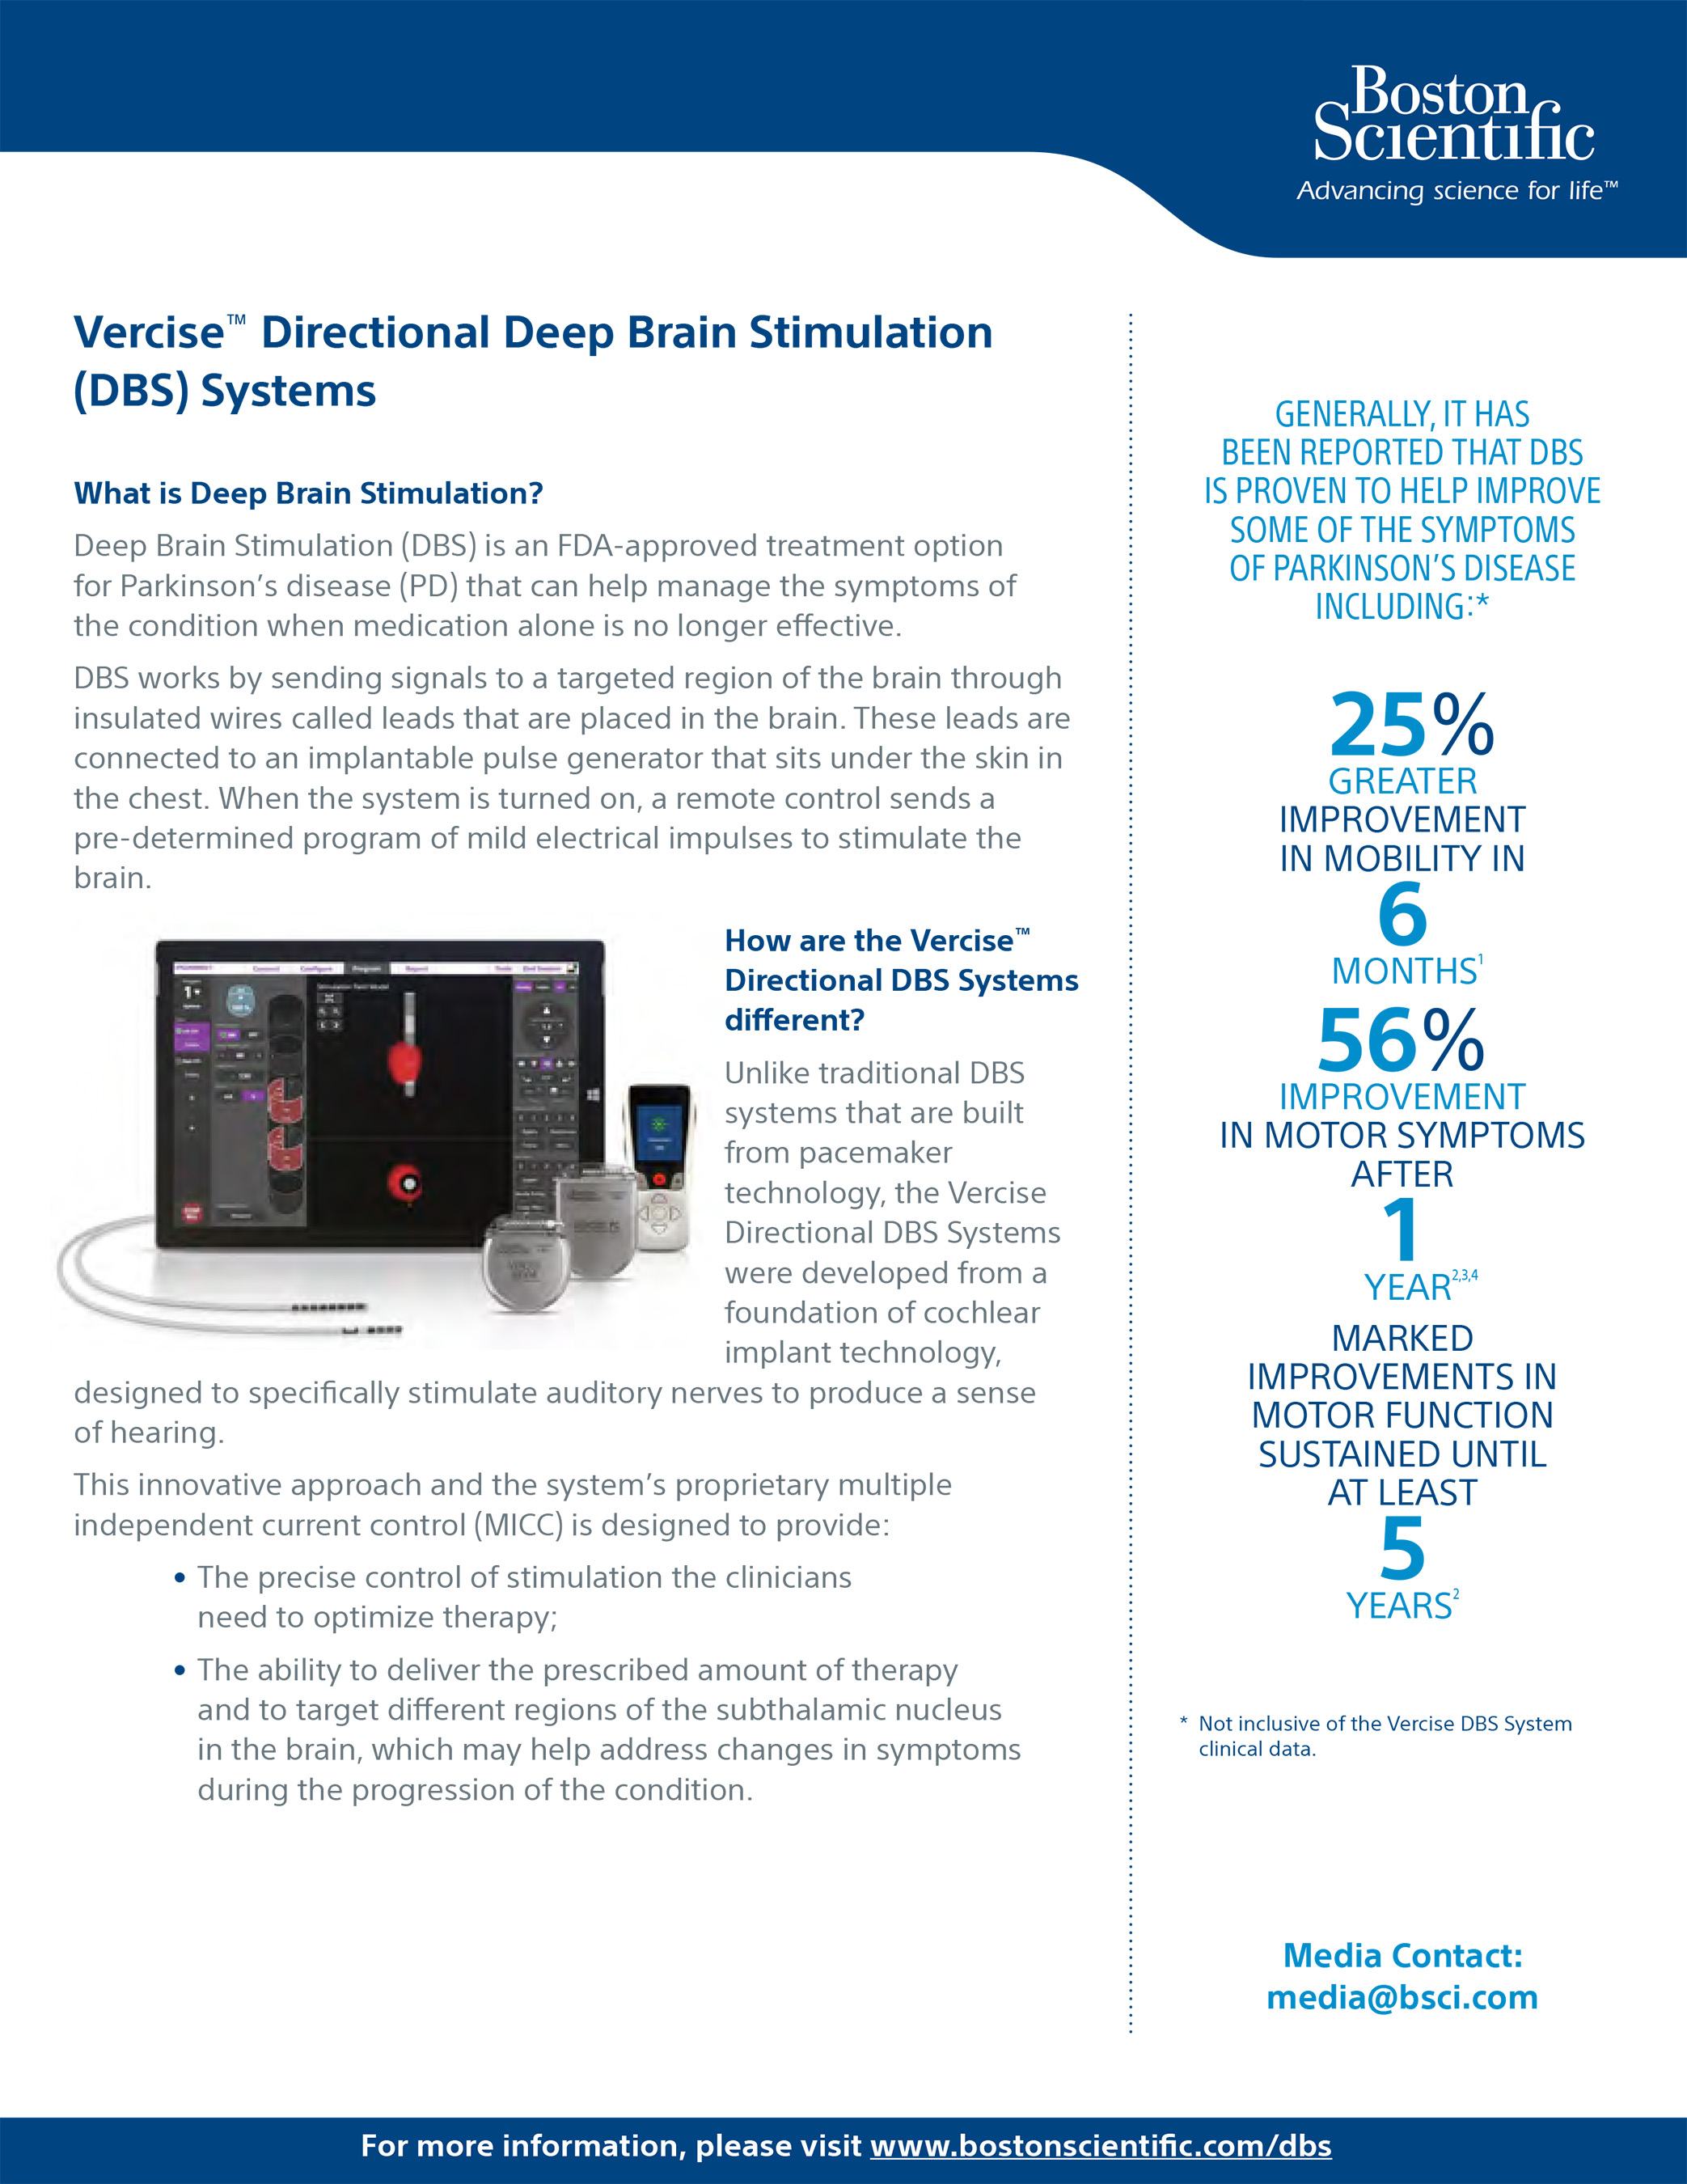 Vercise™ Directional Deep Brain Stimulation (DBS) Systems Fact Sheet